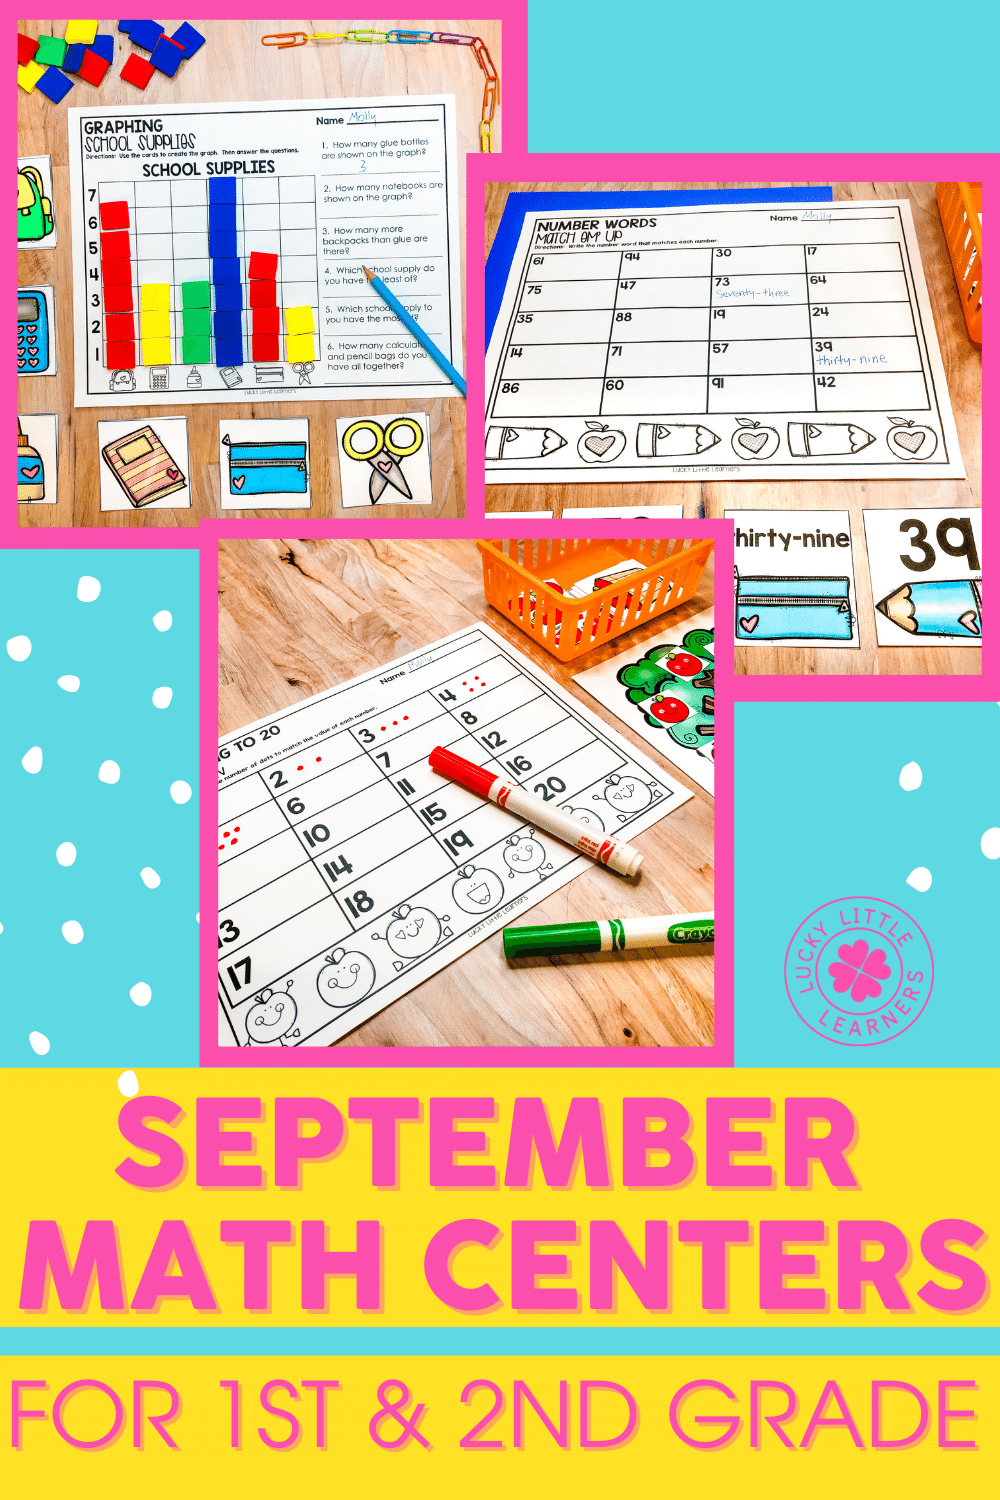 september math centers for 1st and 2nd grade